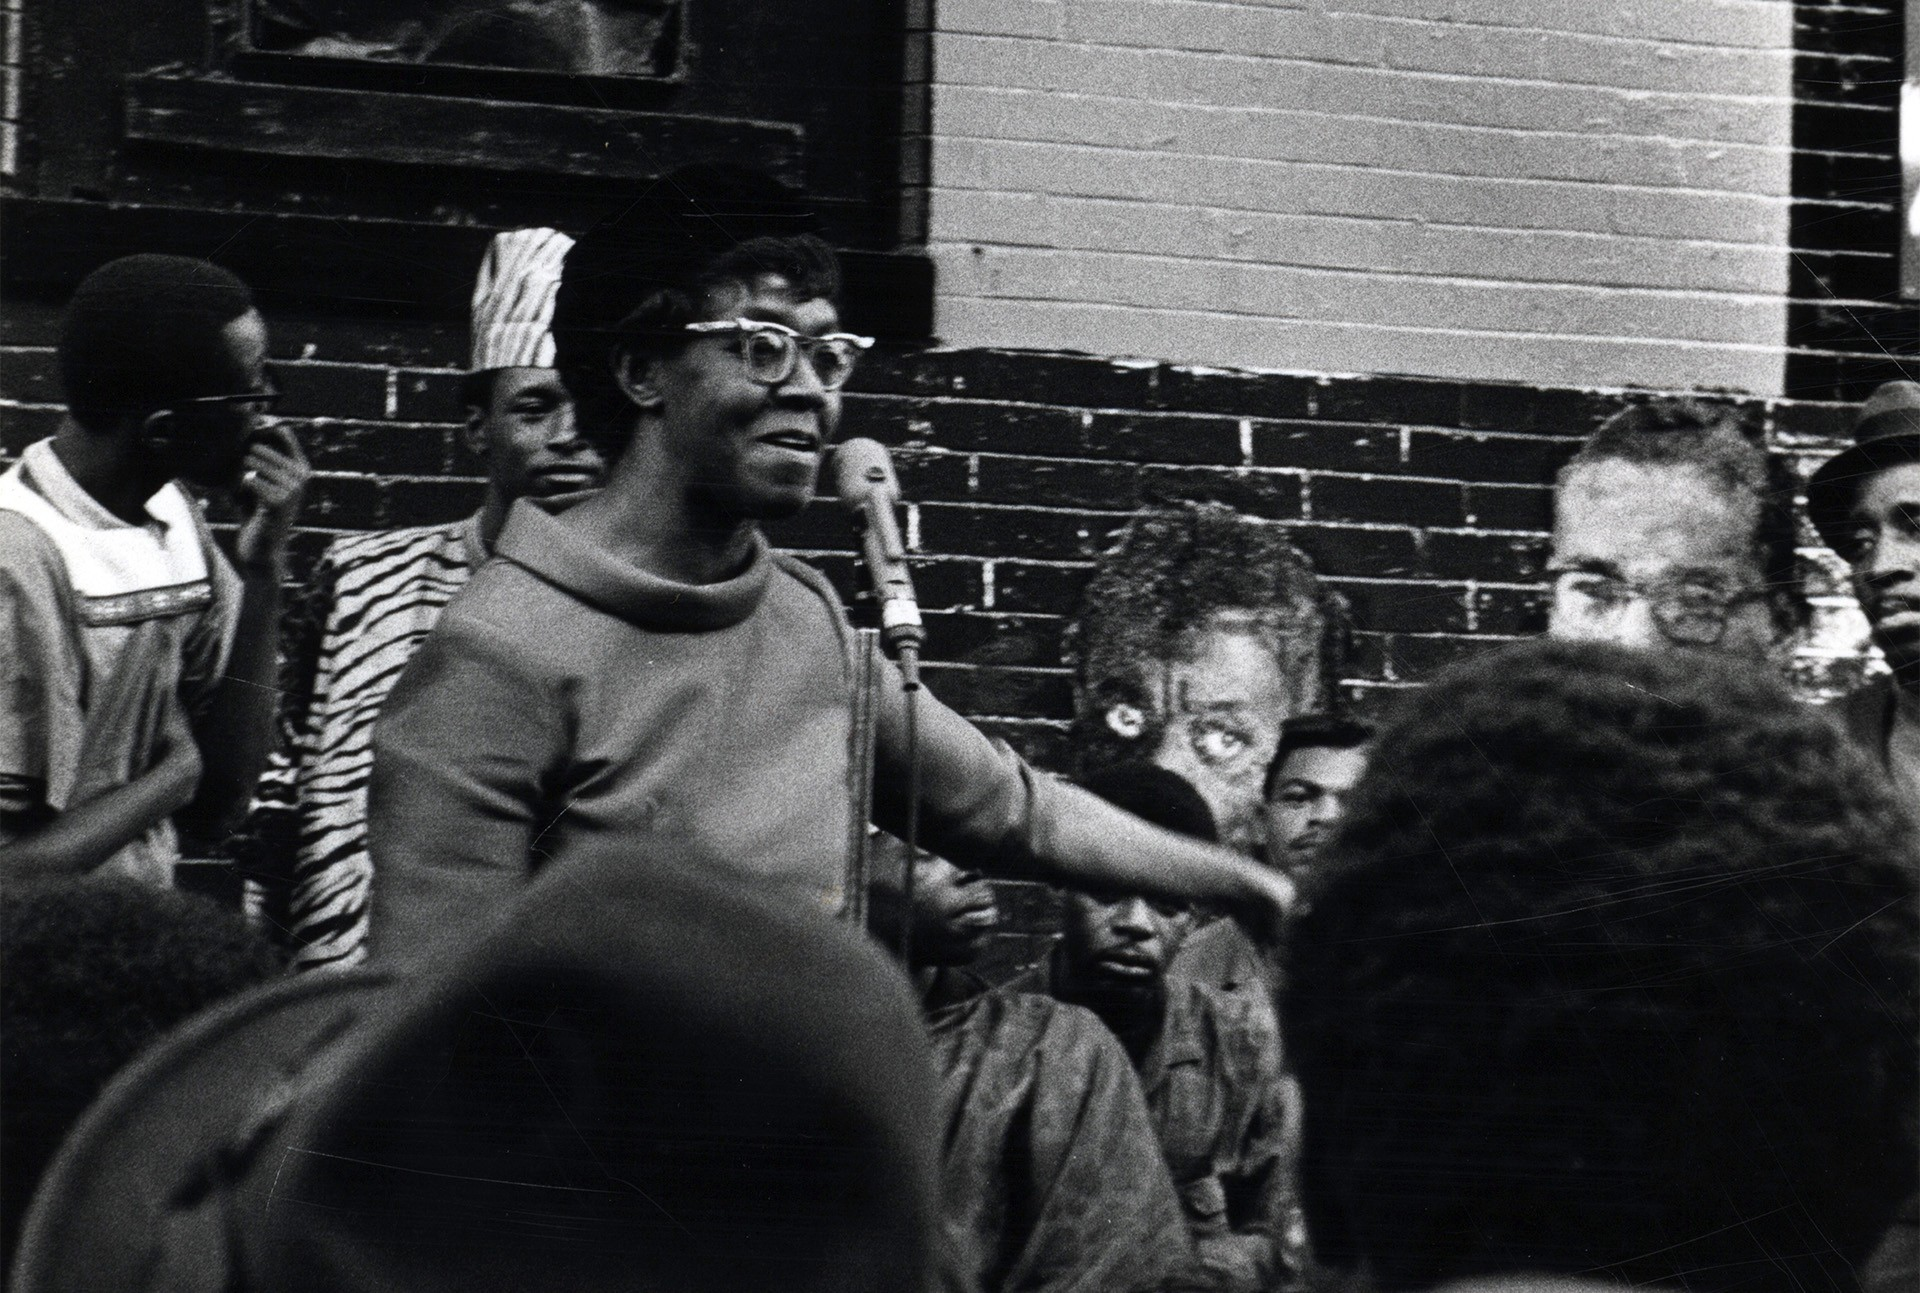 Black and white photograph of the poet Gwendolyn Brooks speaking at the Wall of Respect in 1967.